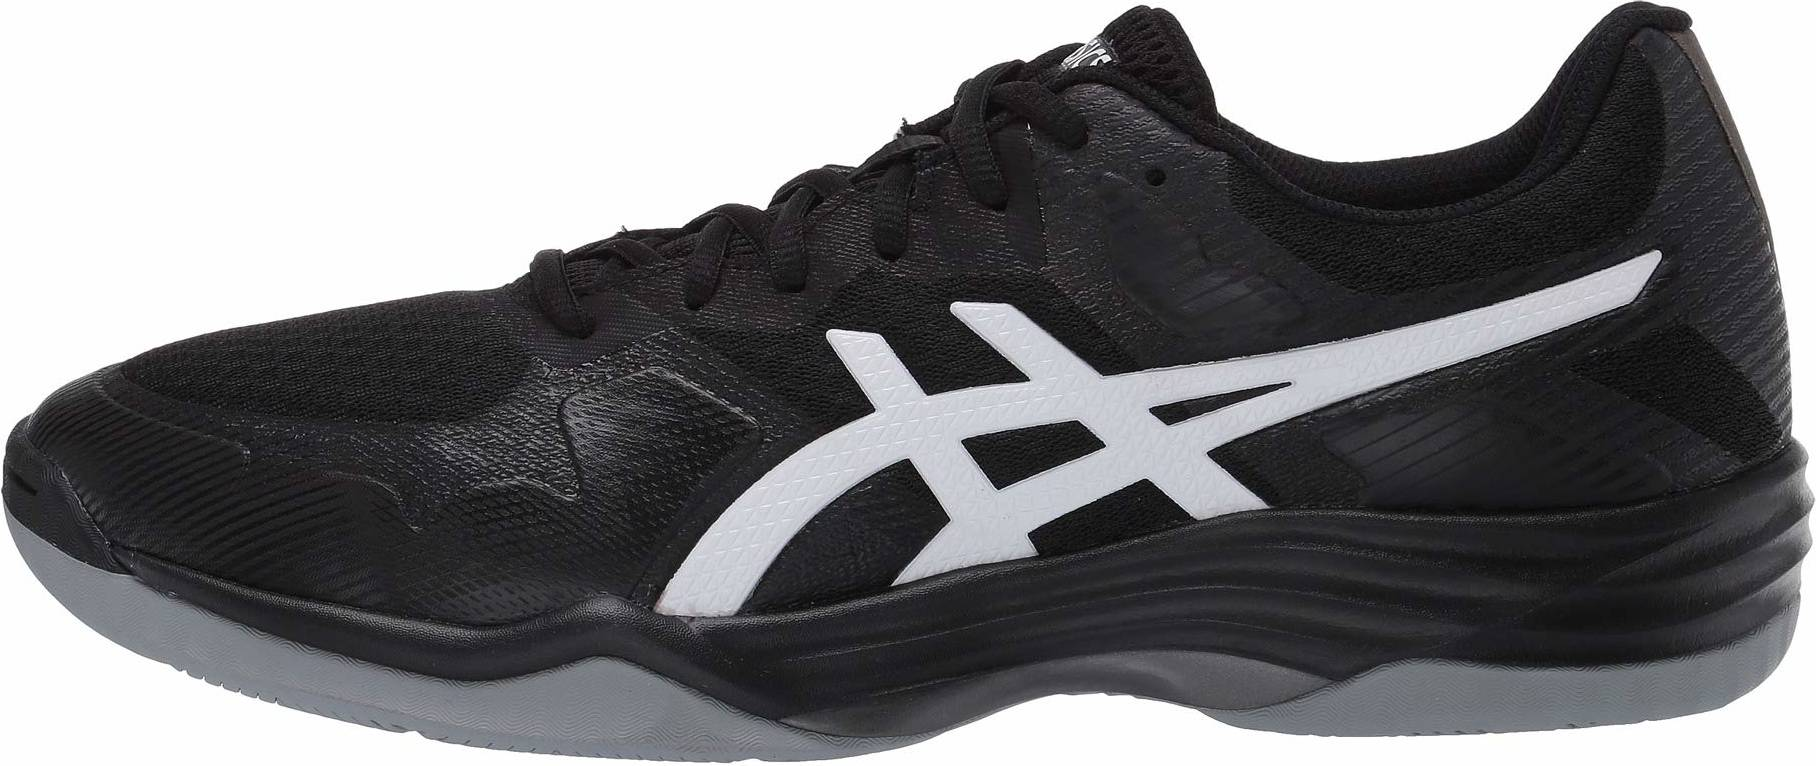 Only £50 + Review of Asics Gel Tactic 2